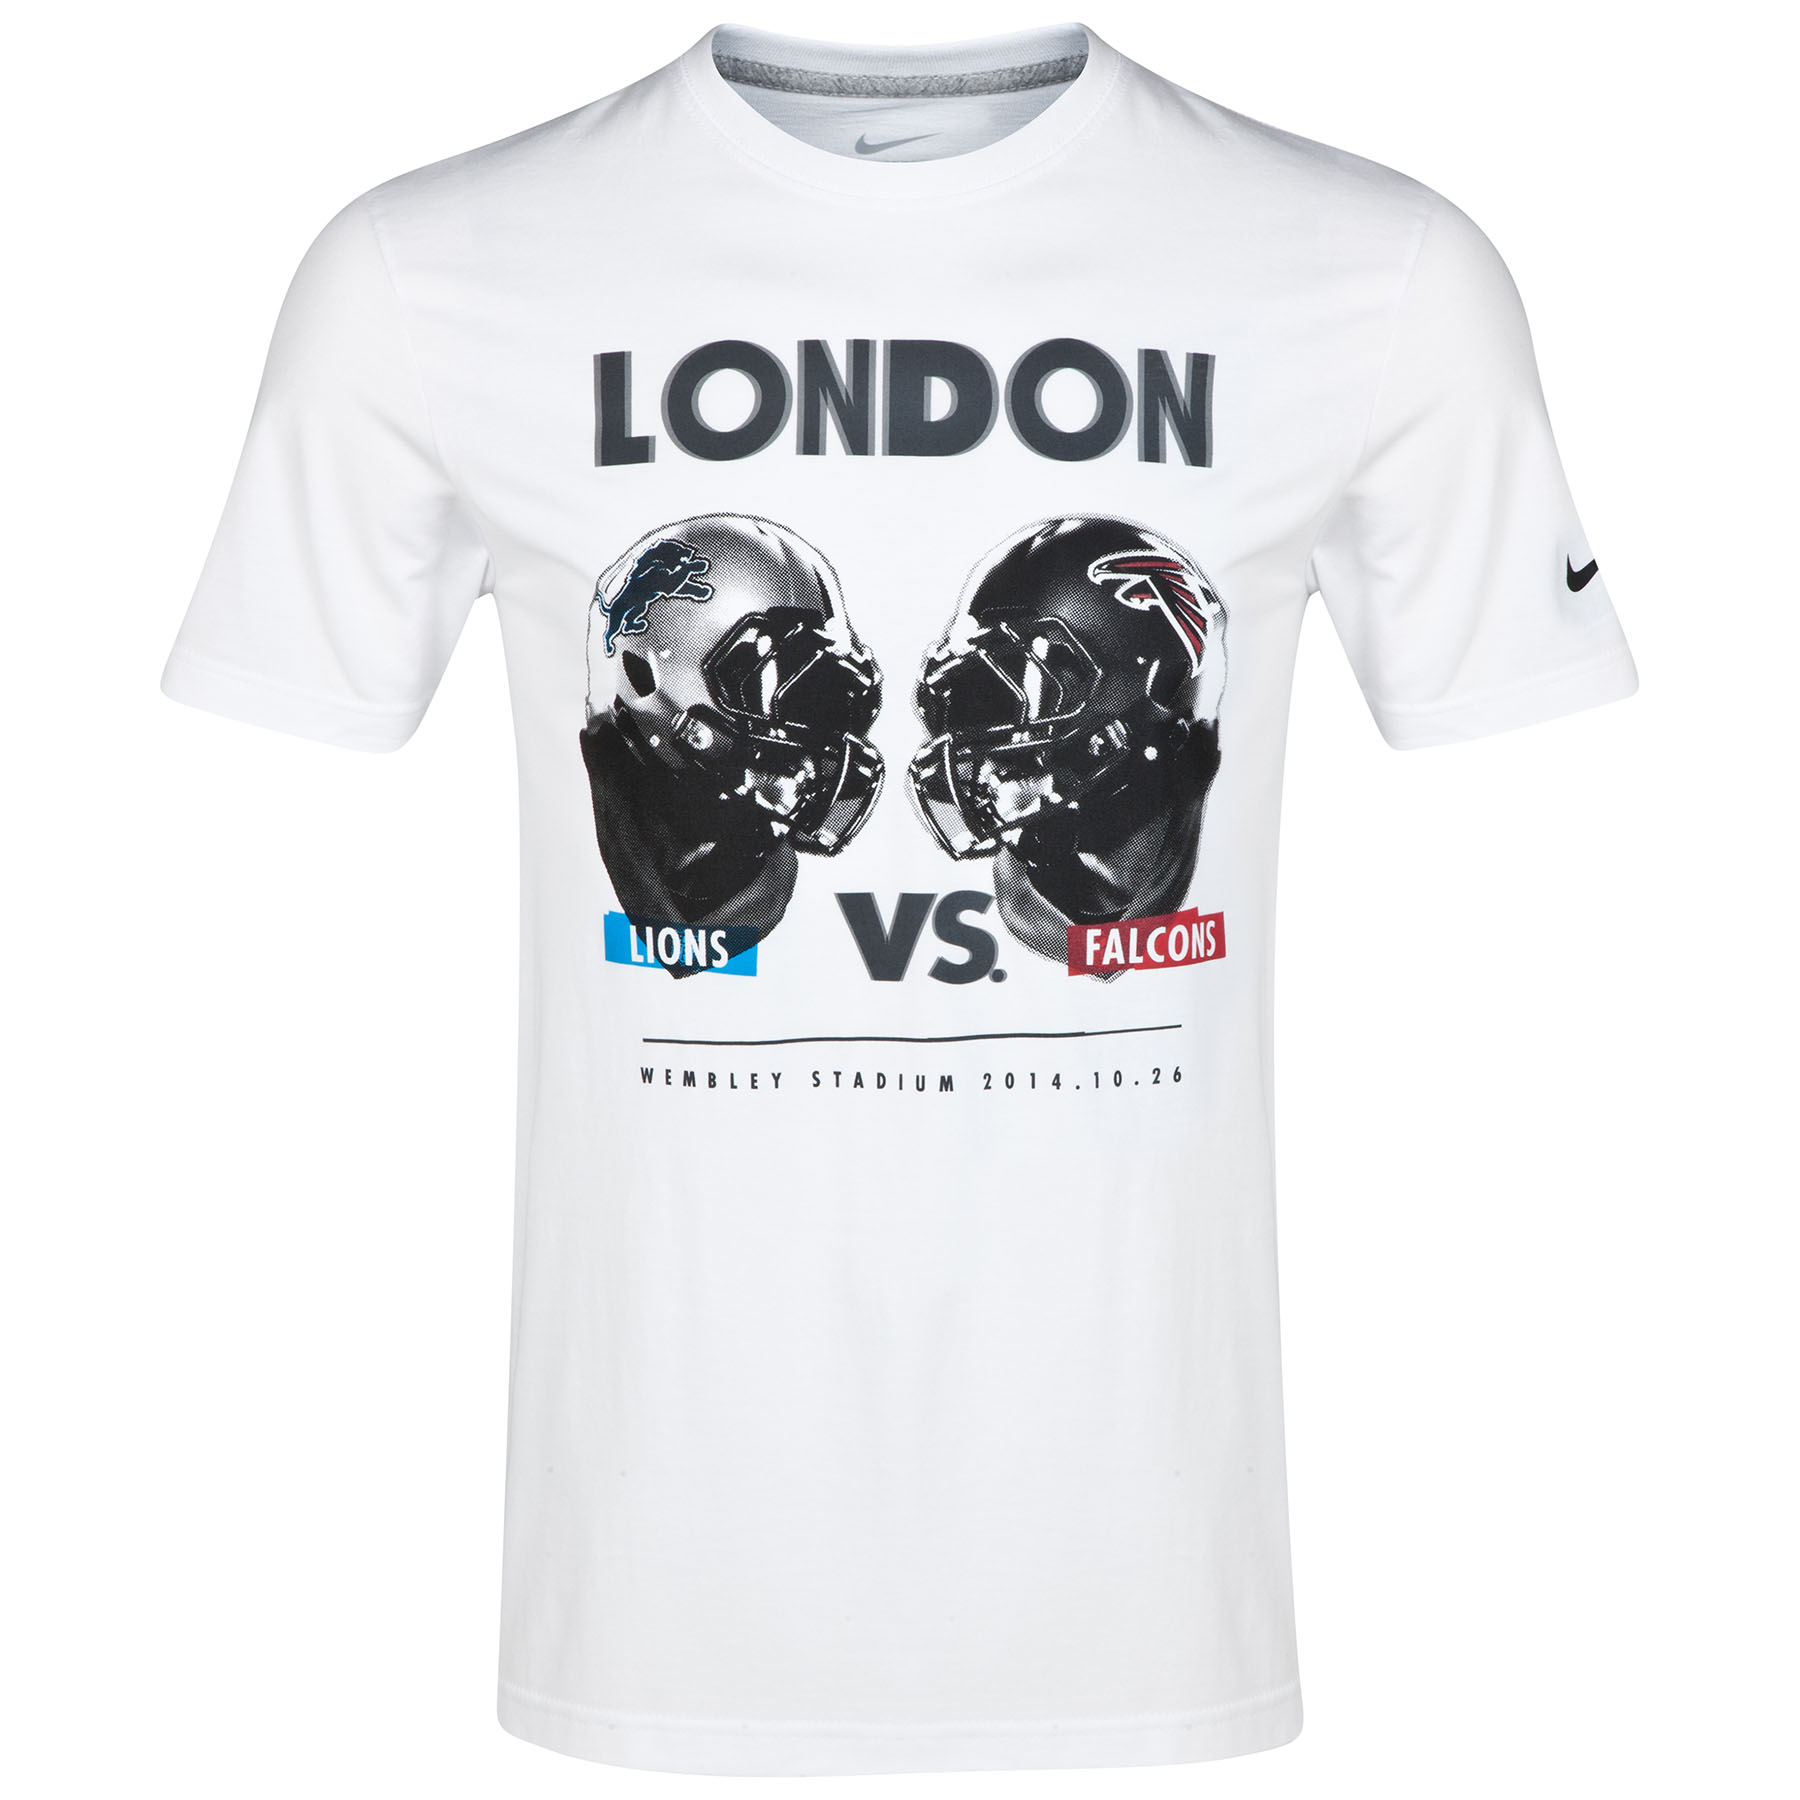 NFL Nike ISG Lions vs Falcons T-Shirt White